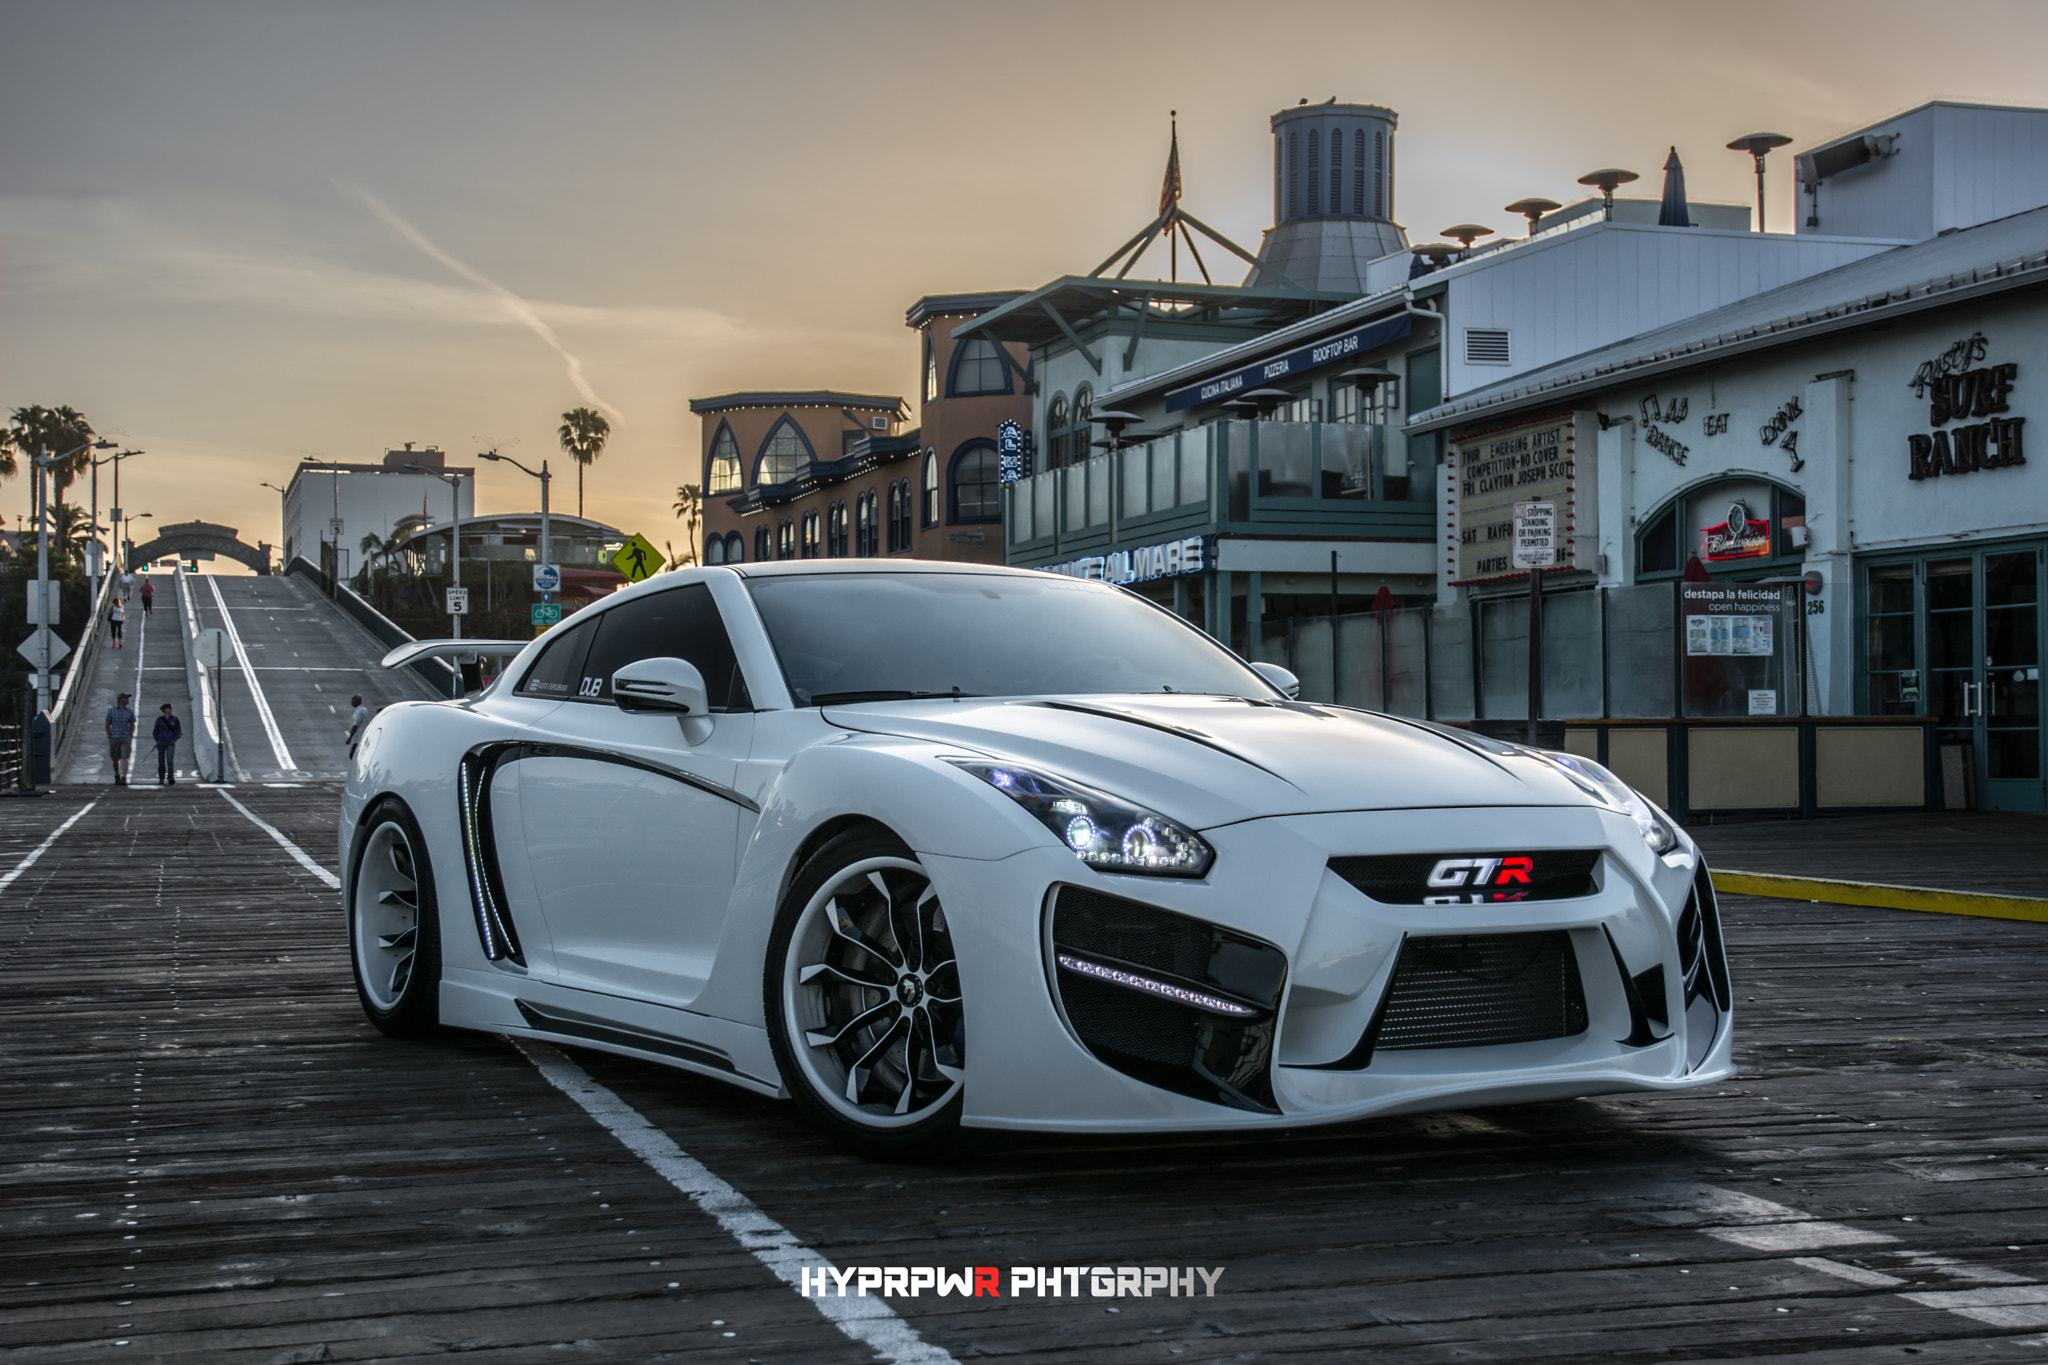 Custom Widebody Nissan GT-R R35 by HYPRPWR PHTGRPHY - Photo 75022421 ...